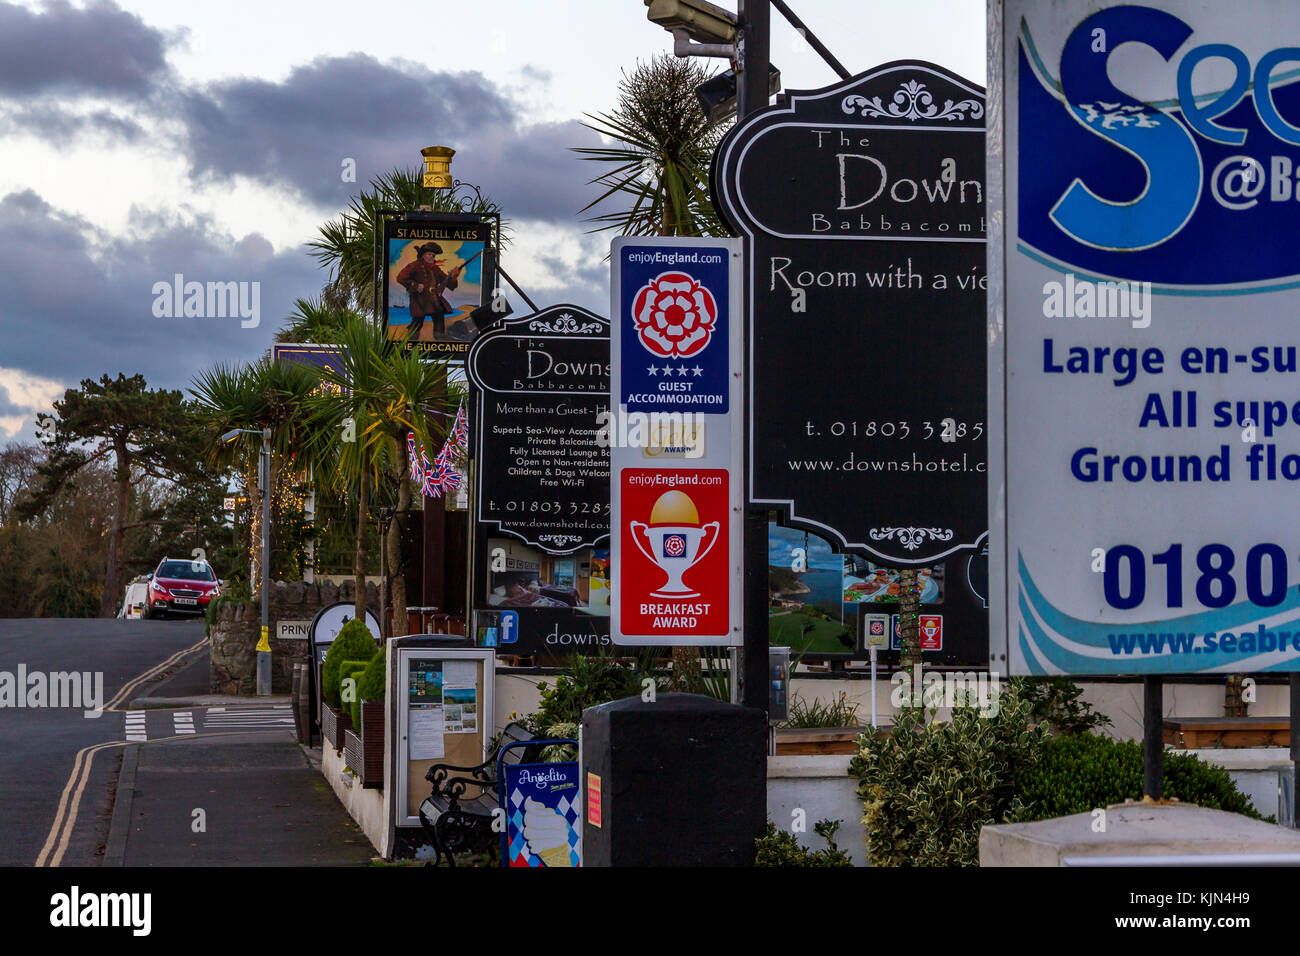 Signage for a row of accommodation and bars along Downs Road, in Babbacombe, Torquay, England, Devon, UK. November - Stock Image